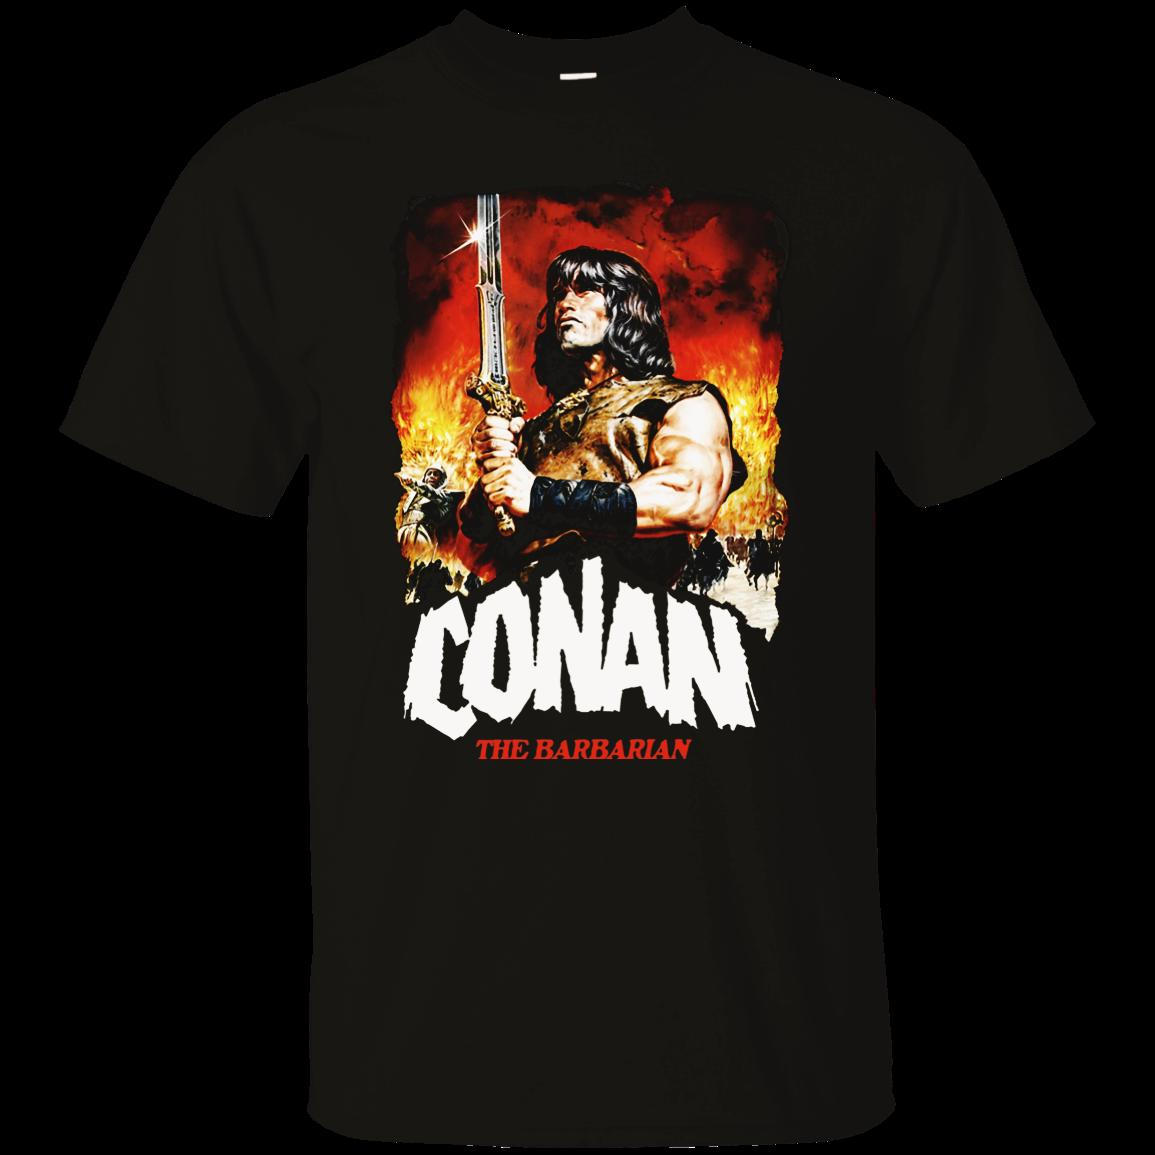 Conan, The Barbarian, Destroyer, Retro, 1980 s, Movie, Arnold,  Schwarzenegger, T